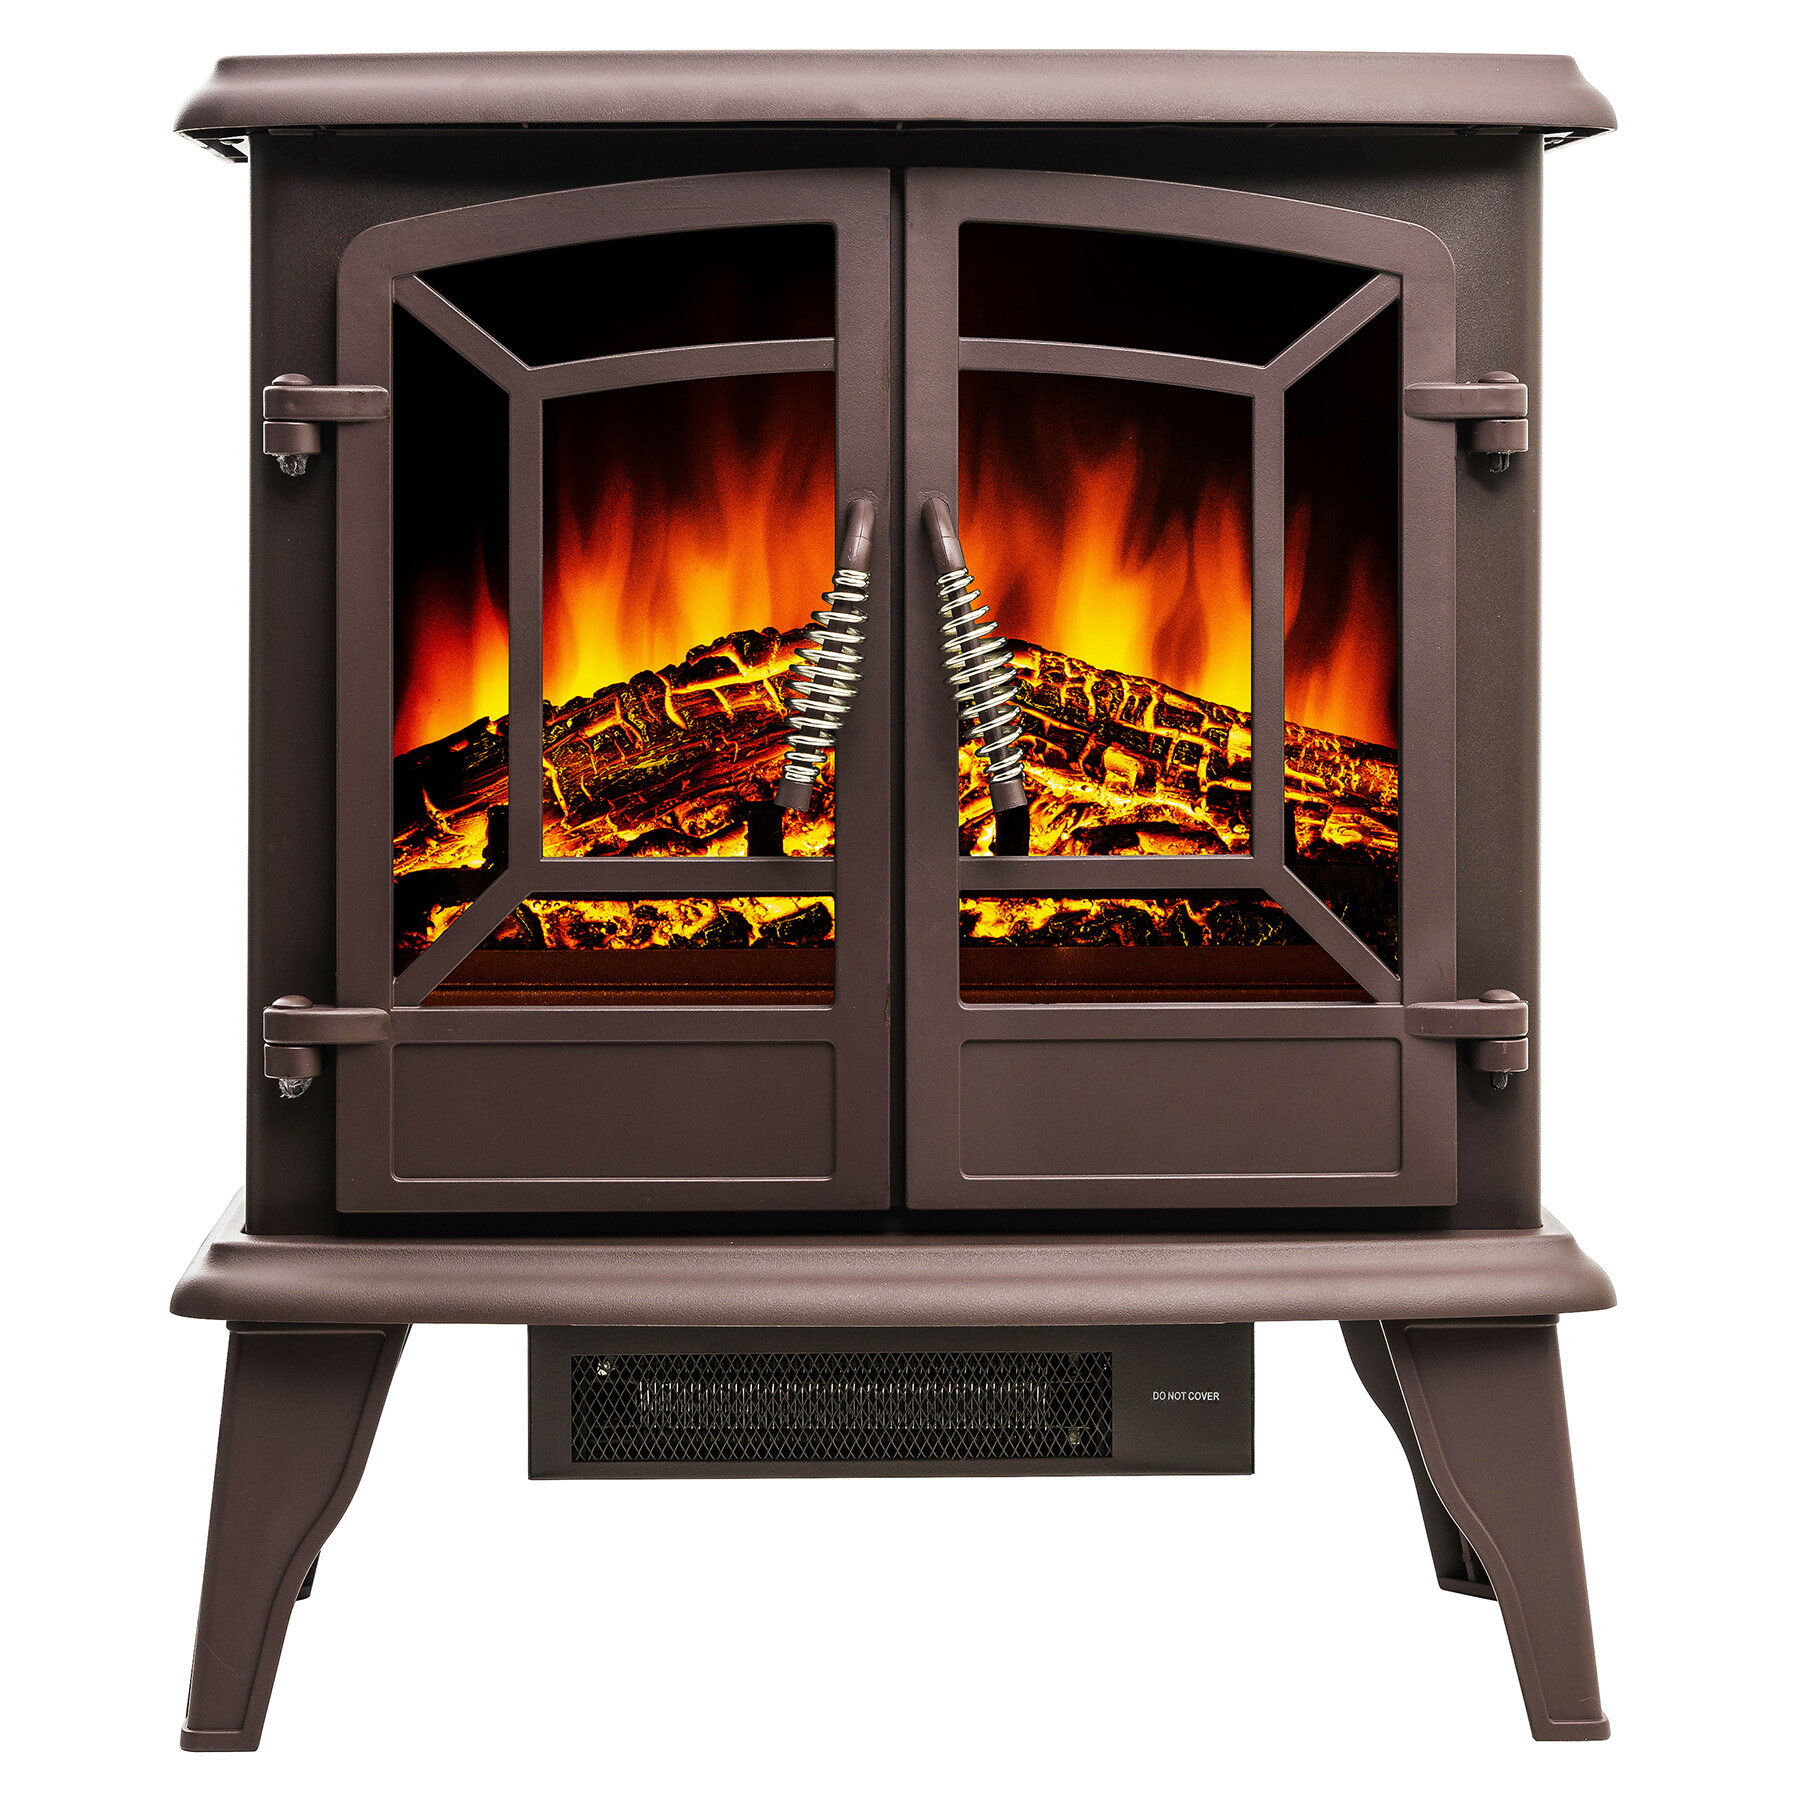 inch with aspen stove vintage and portable electric free black flame amazon logs fire fireplace standing realistic dp com